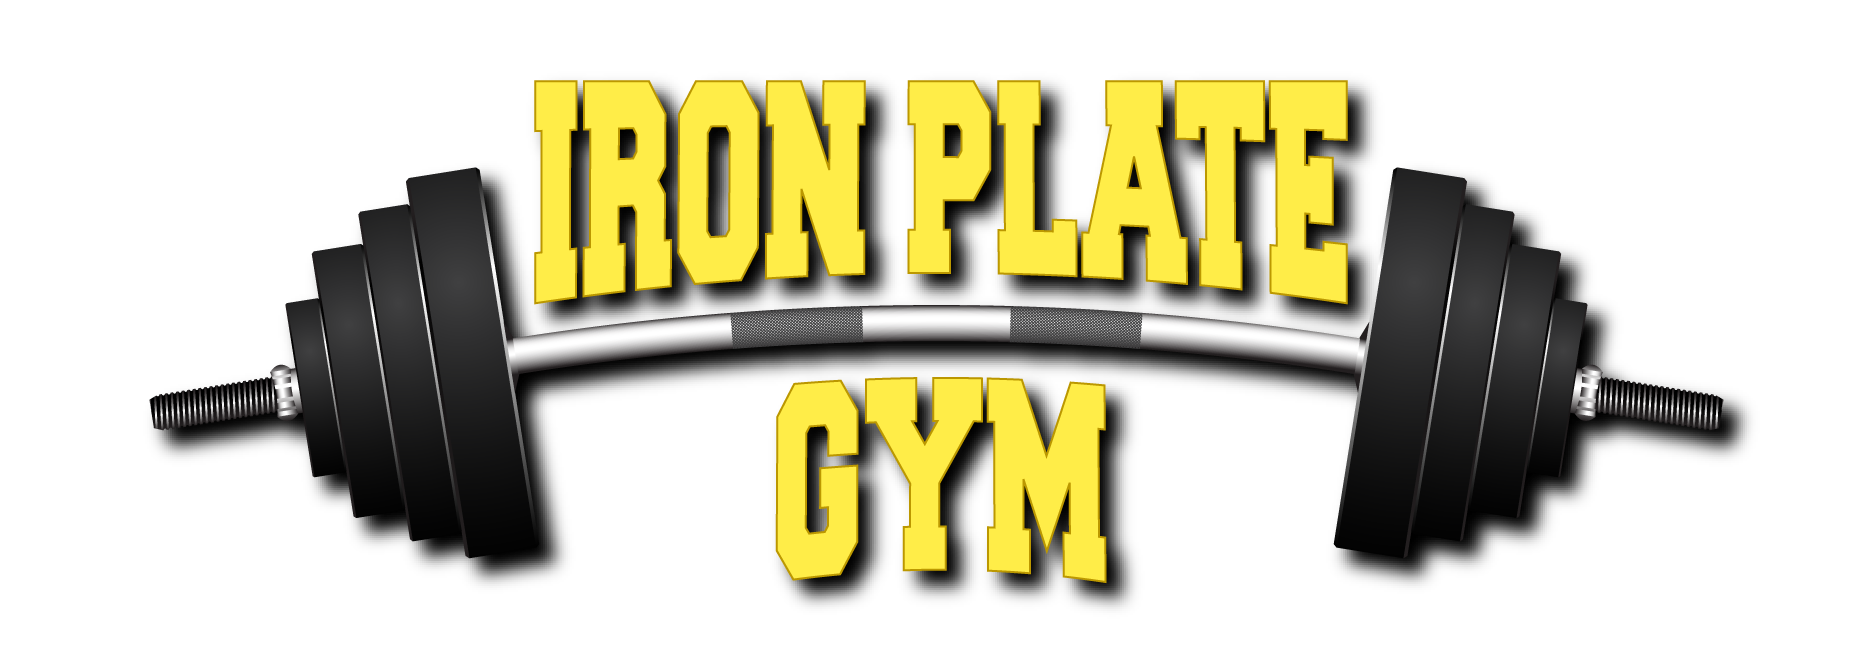 Iron Plate Gym